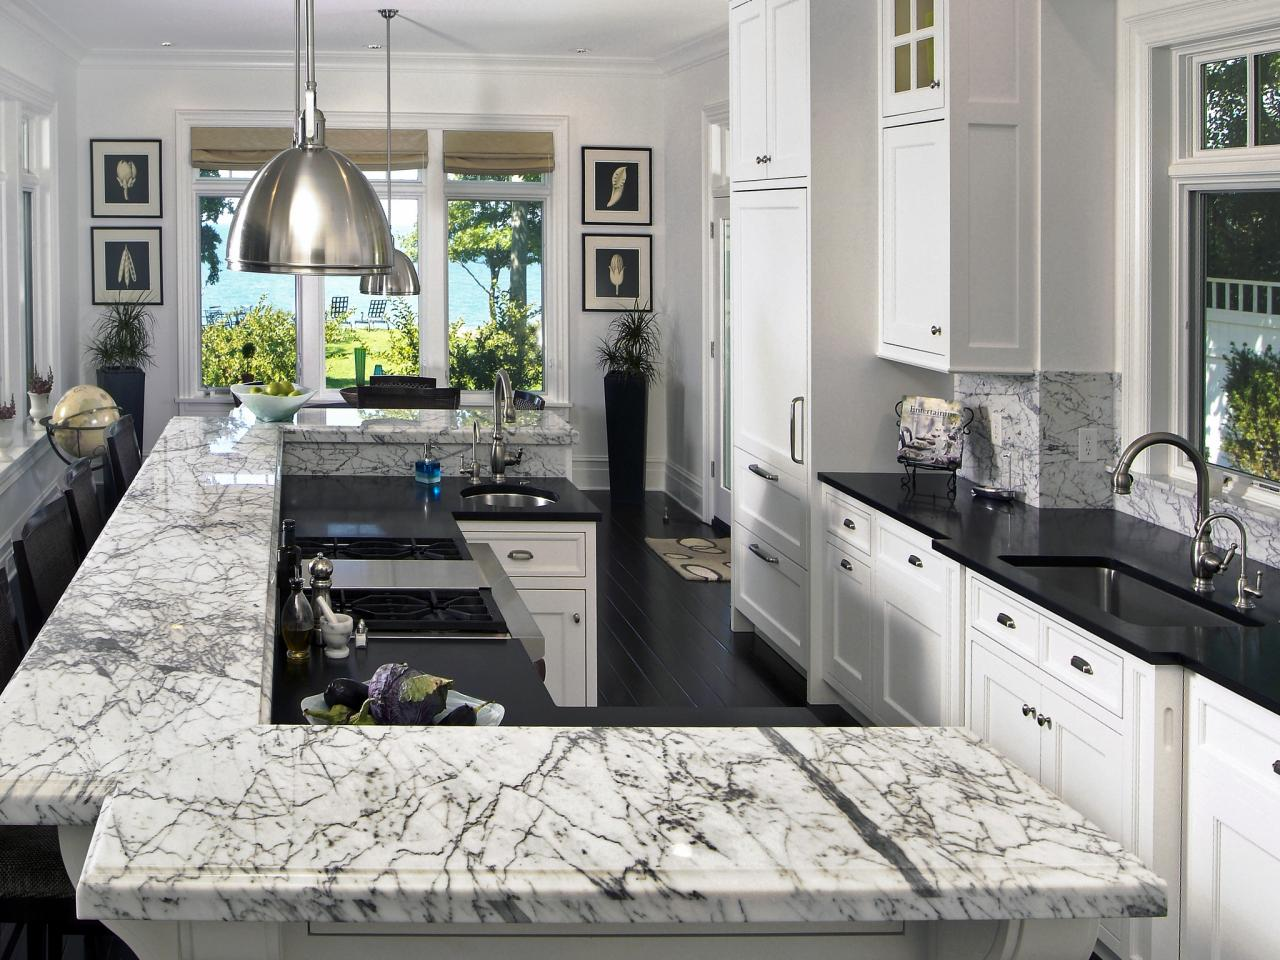 quartz granite or solid surface whats your perfect kitchen countertop surface kitchen countertop prices Image credit Marble Granite